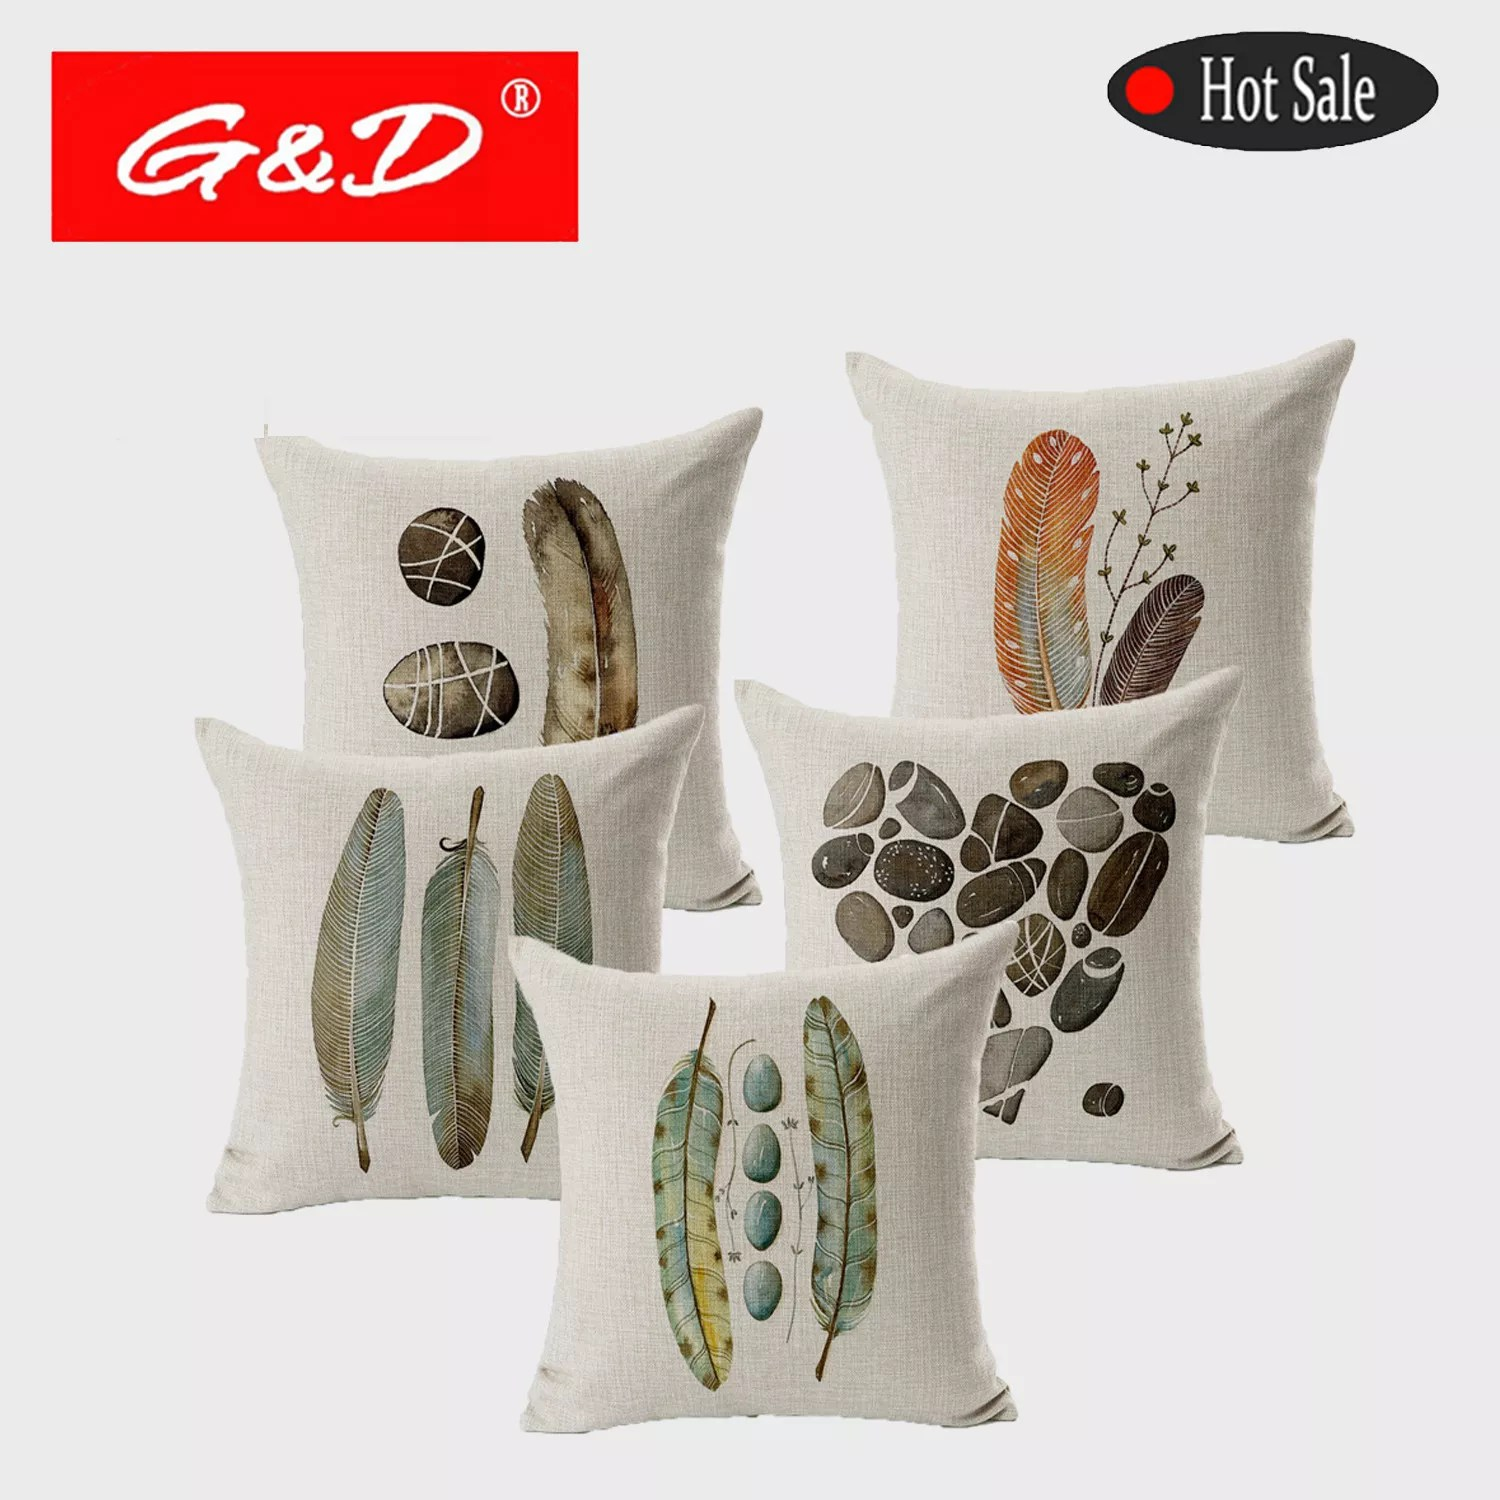 g d 45x45cm hand painted feather design printed pillow cushion cover for bed buy pillow cushion cover custom cushion cover design printed cushion